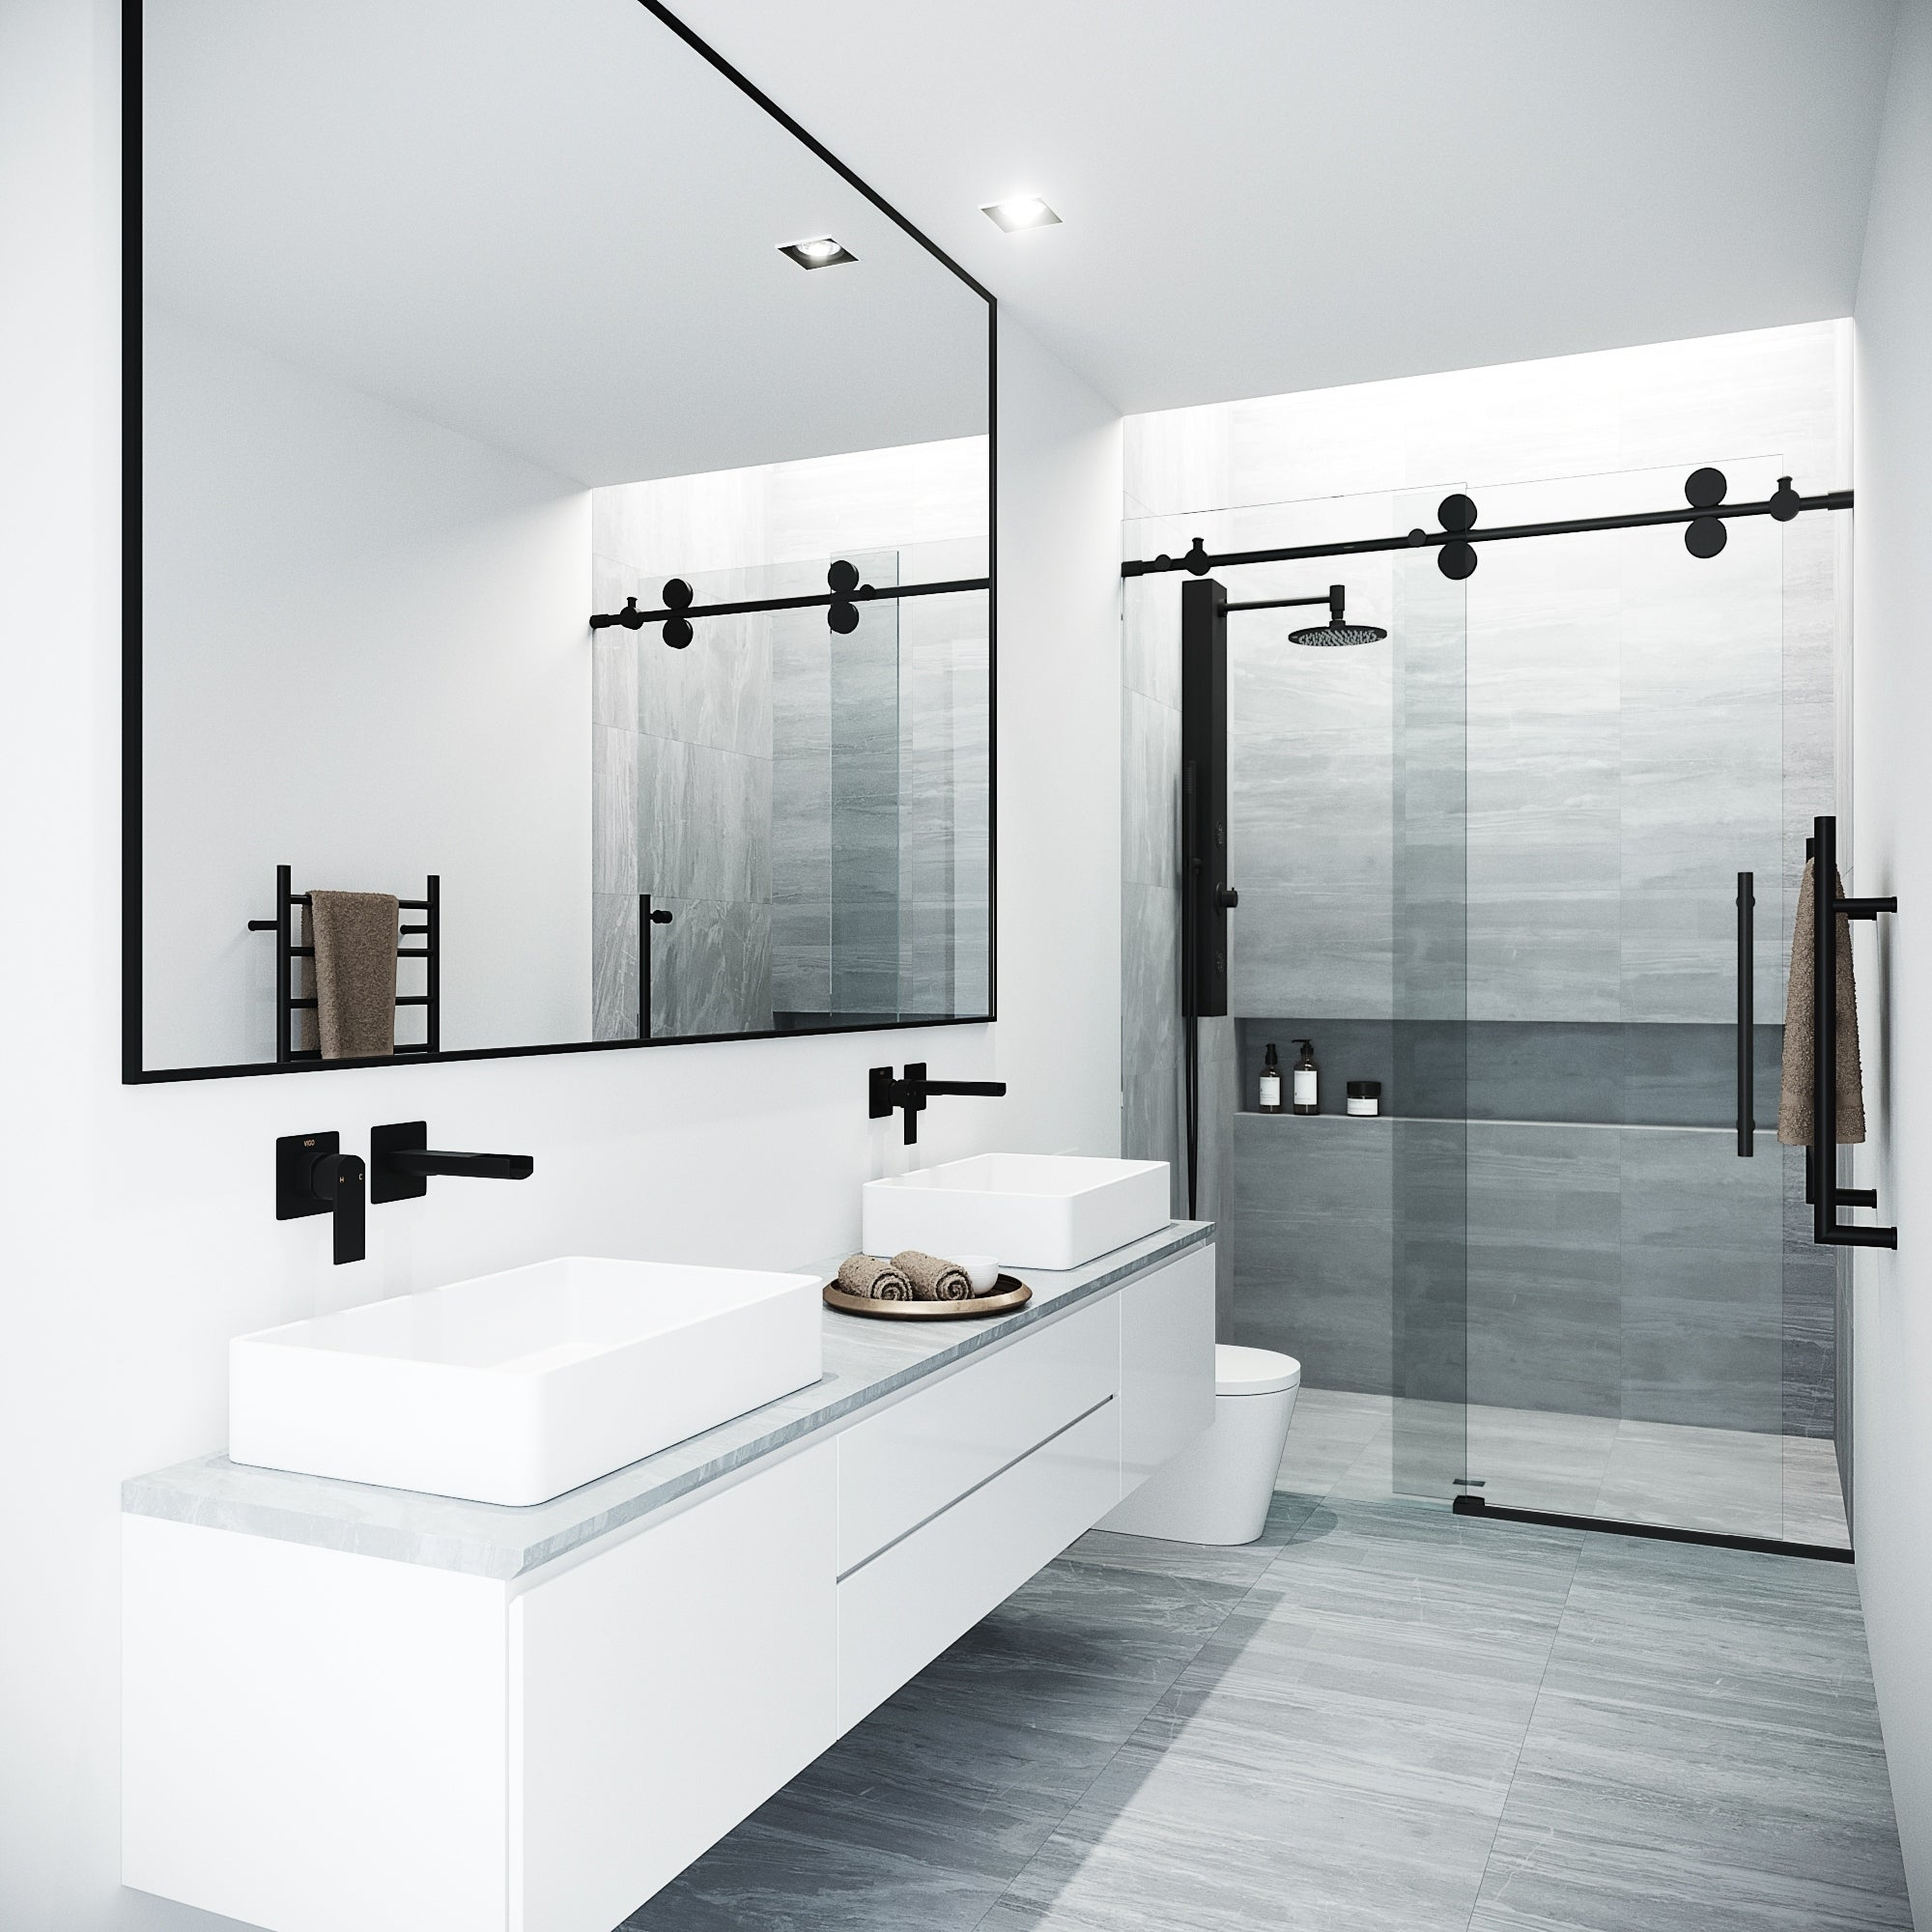 Bathroom Layout 10: The Essential Considerations When Designing a